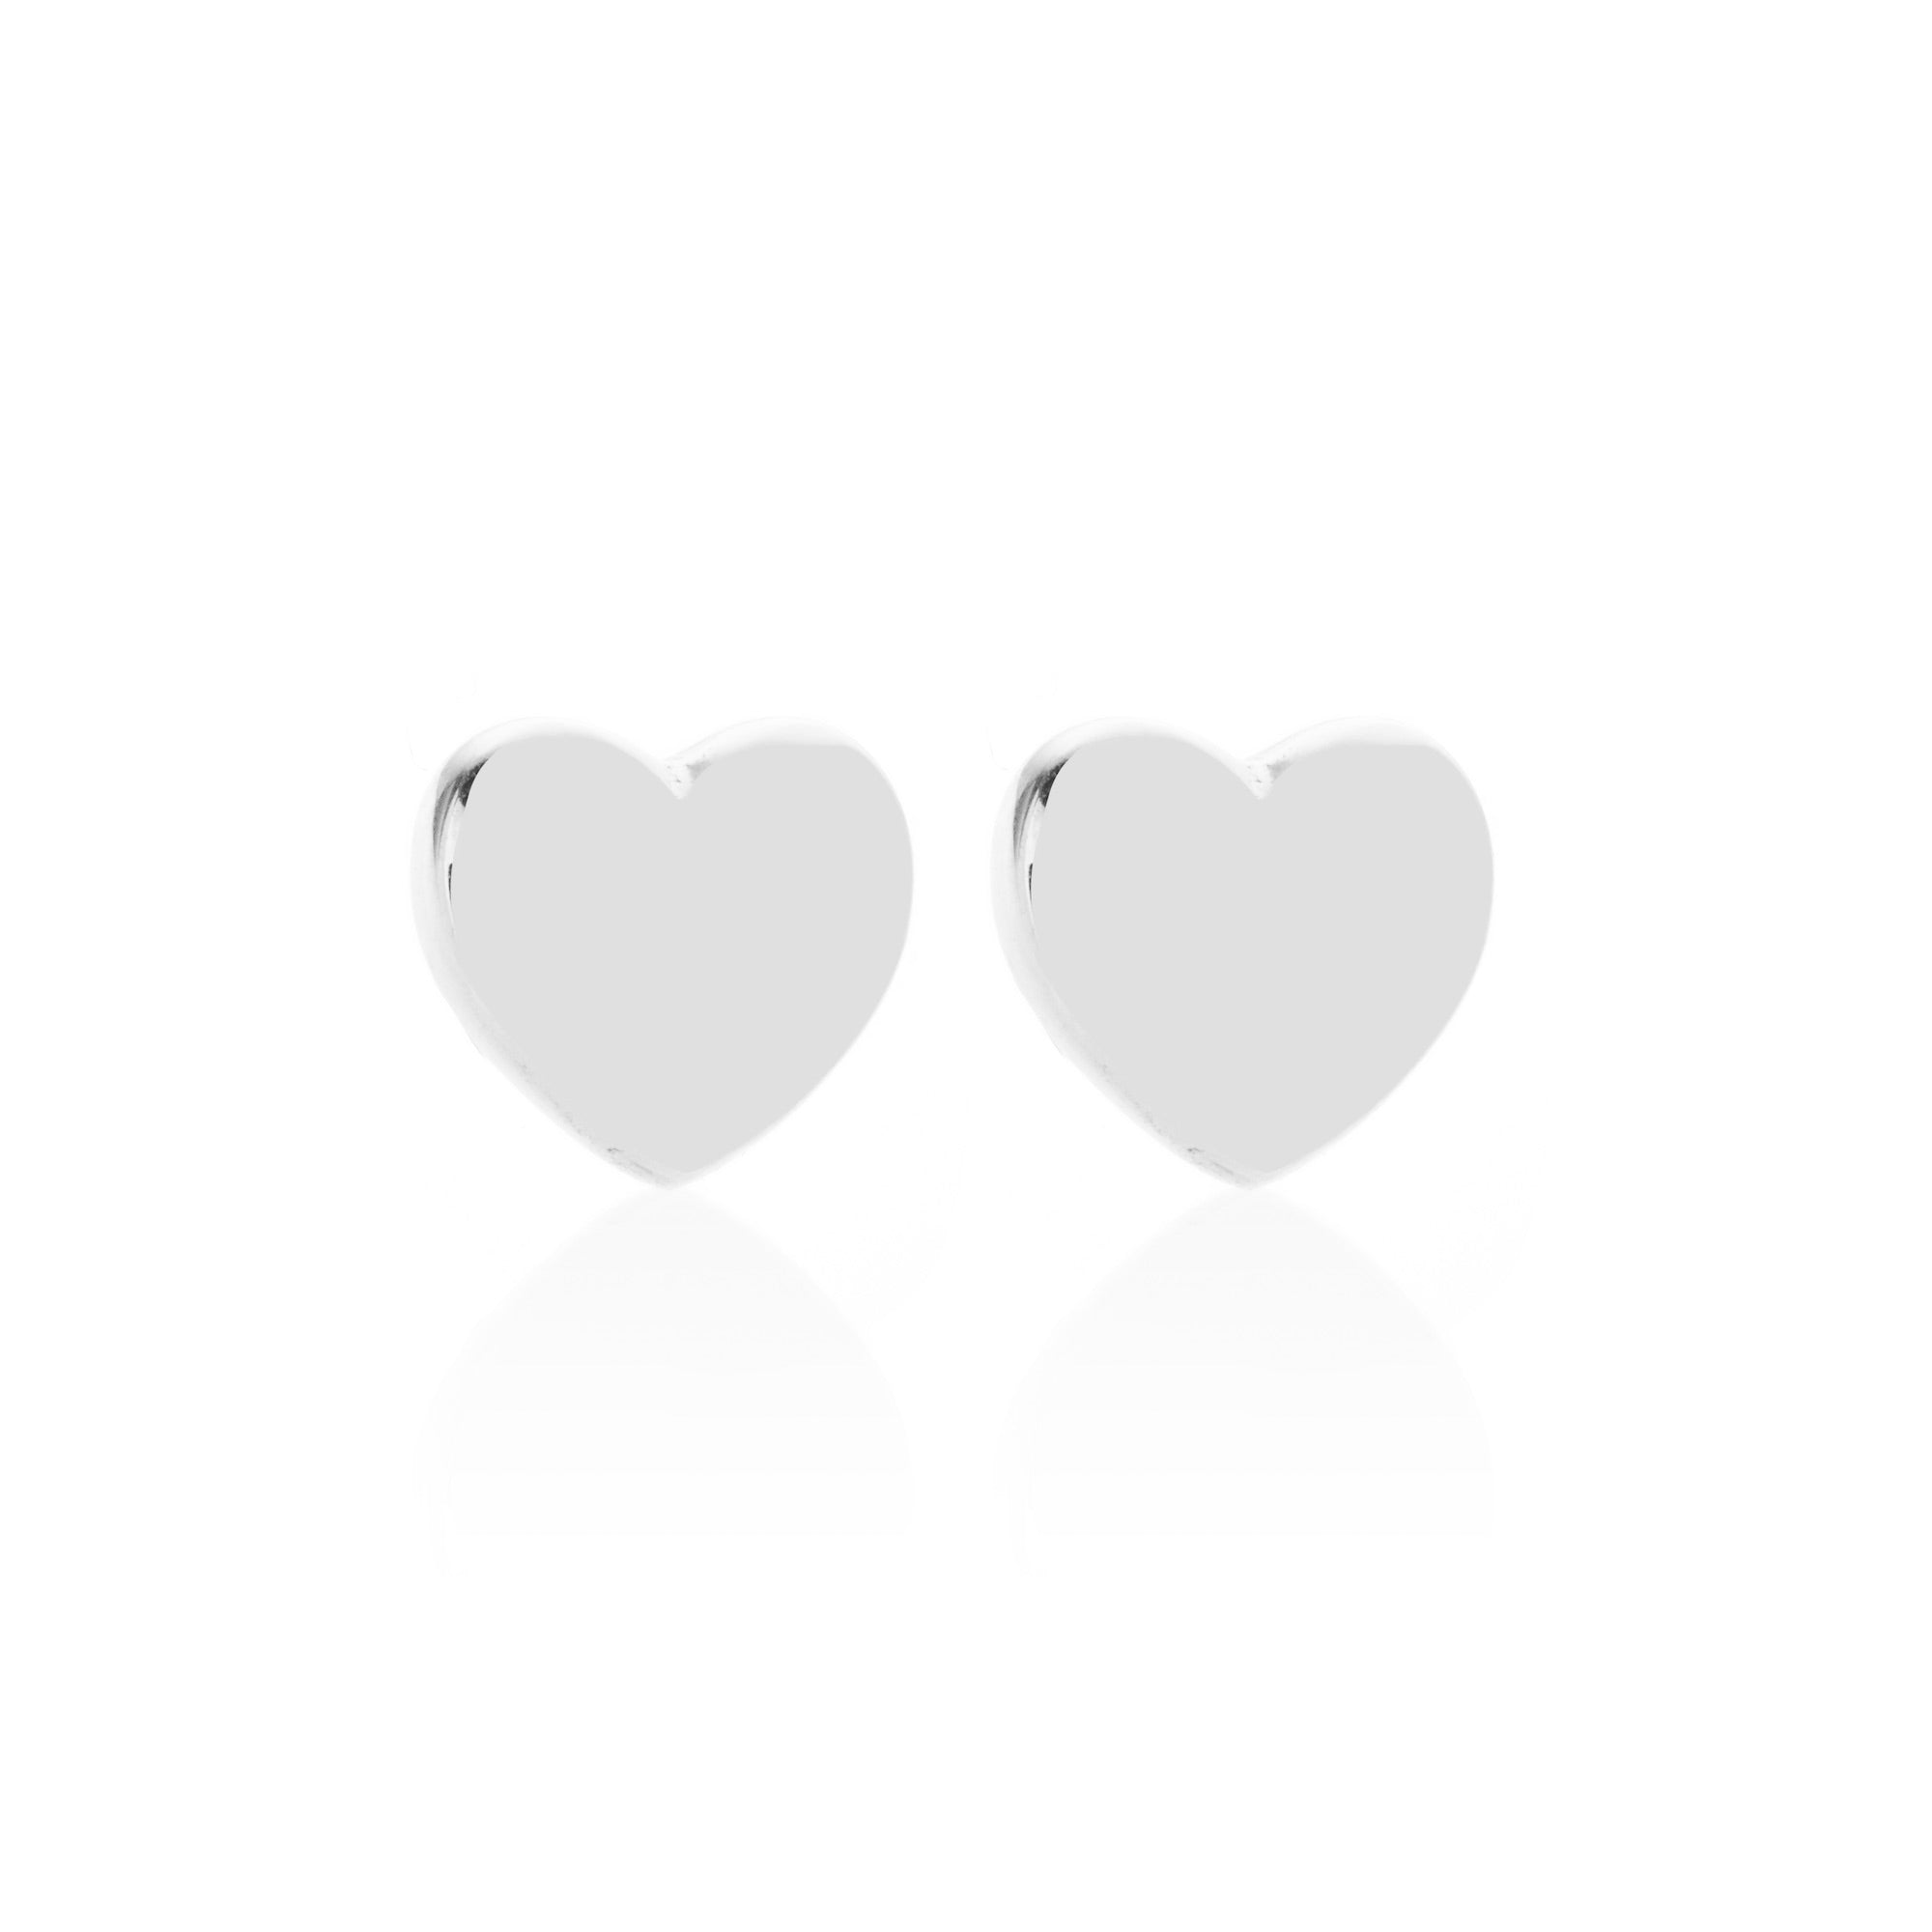 Silk & Steel Jewellery Superfine Silver Sweetheart Sterling Silver Stud Earrings